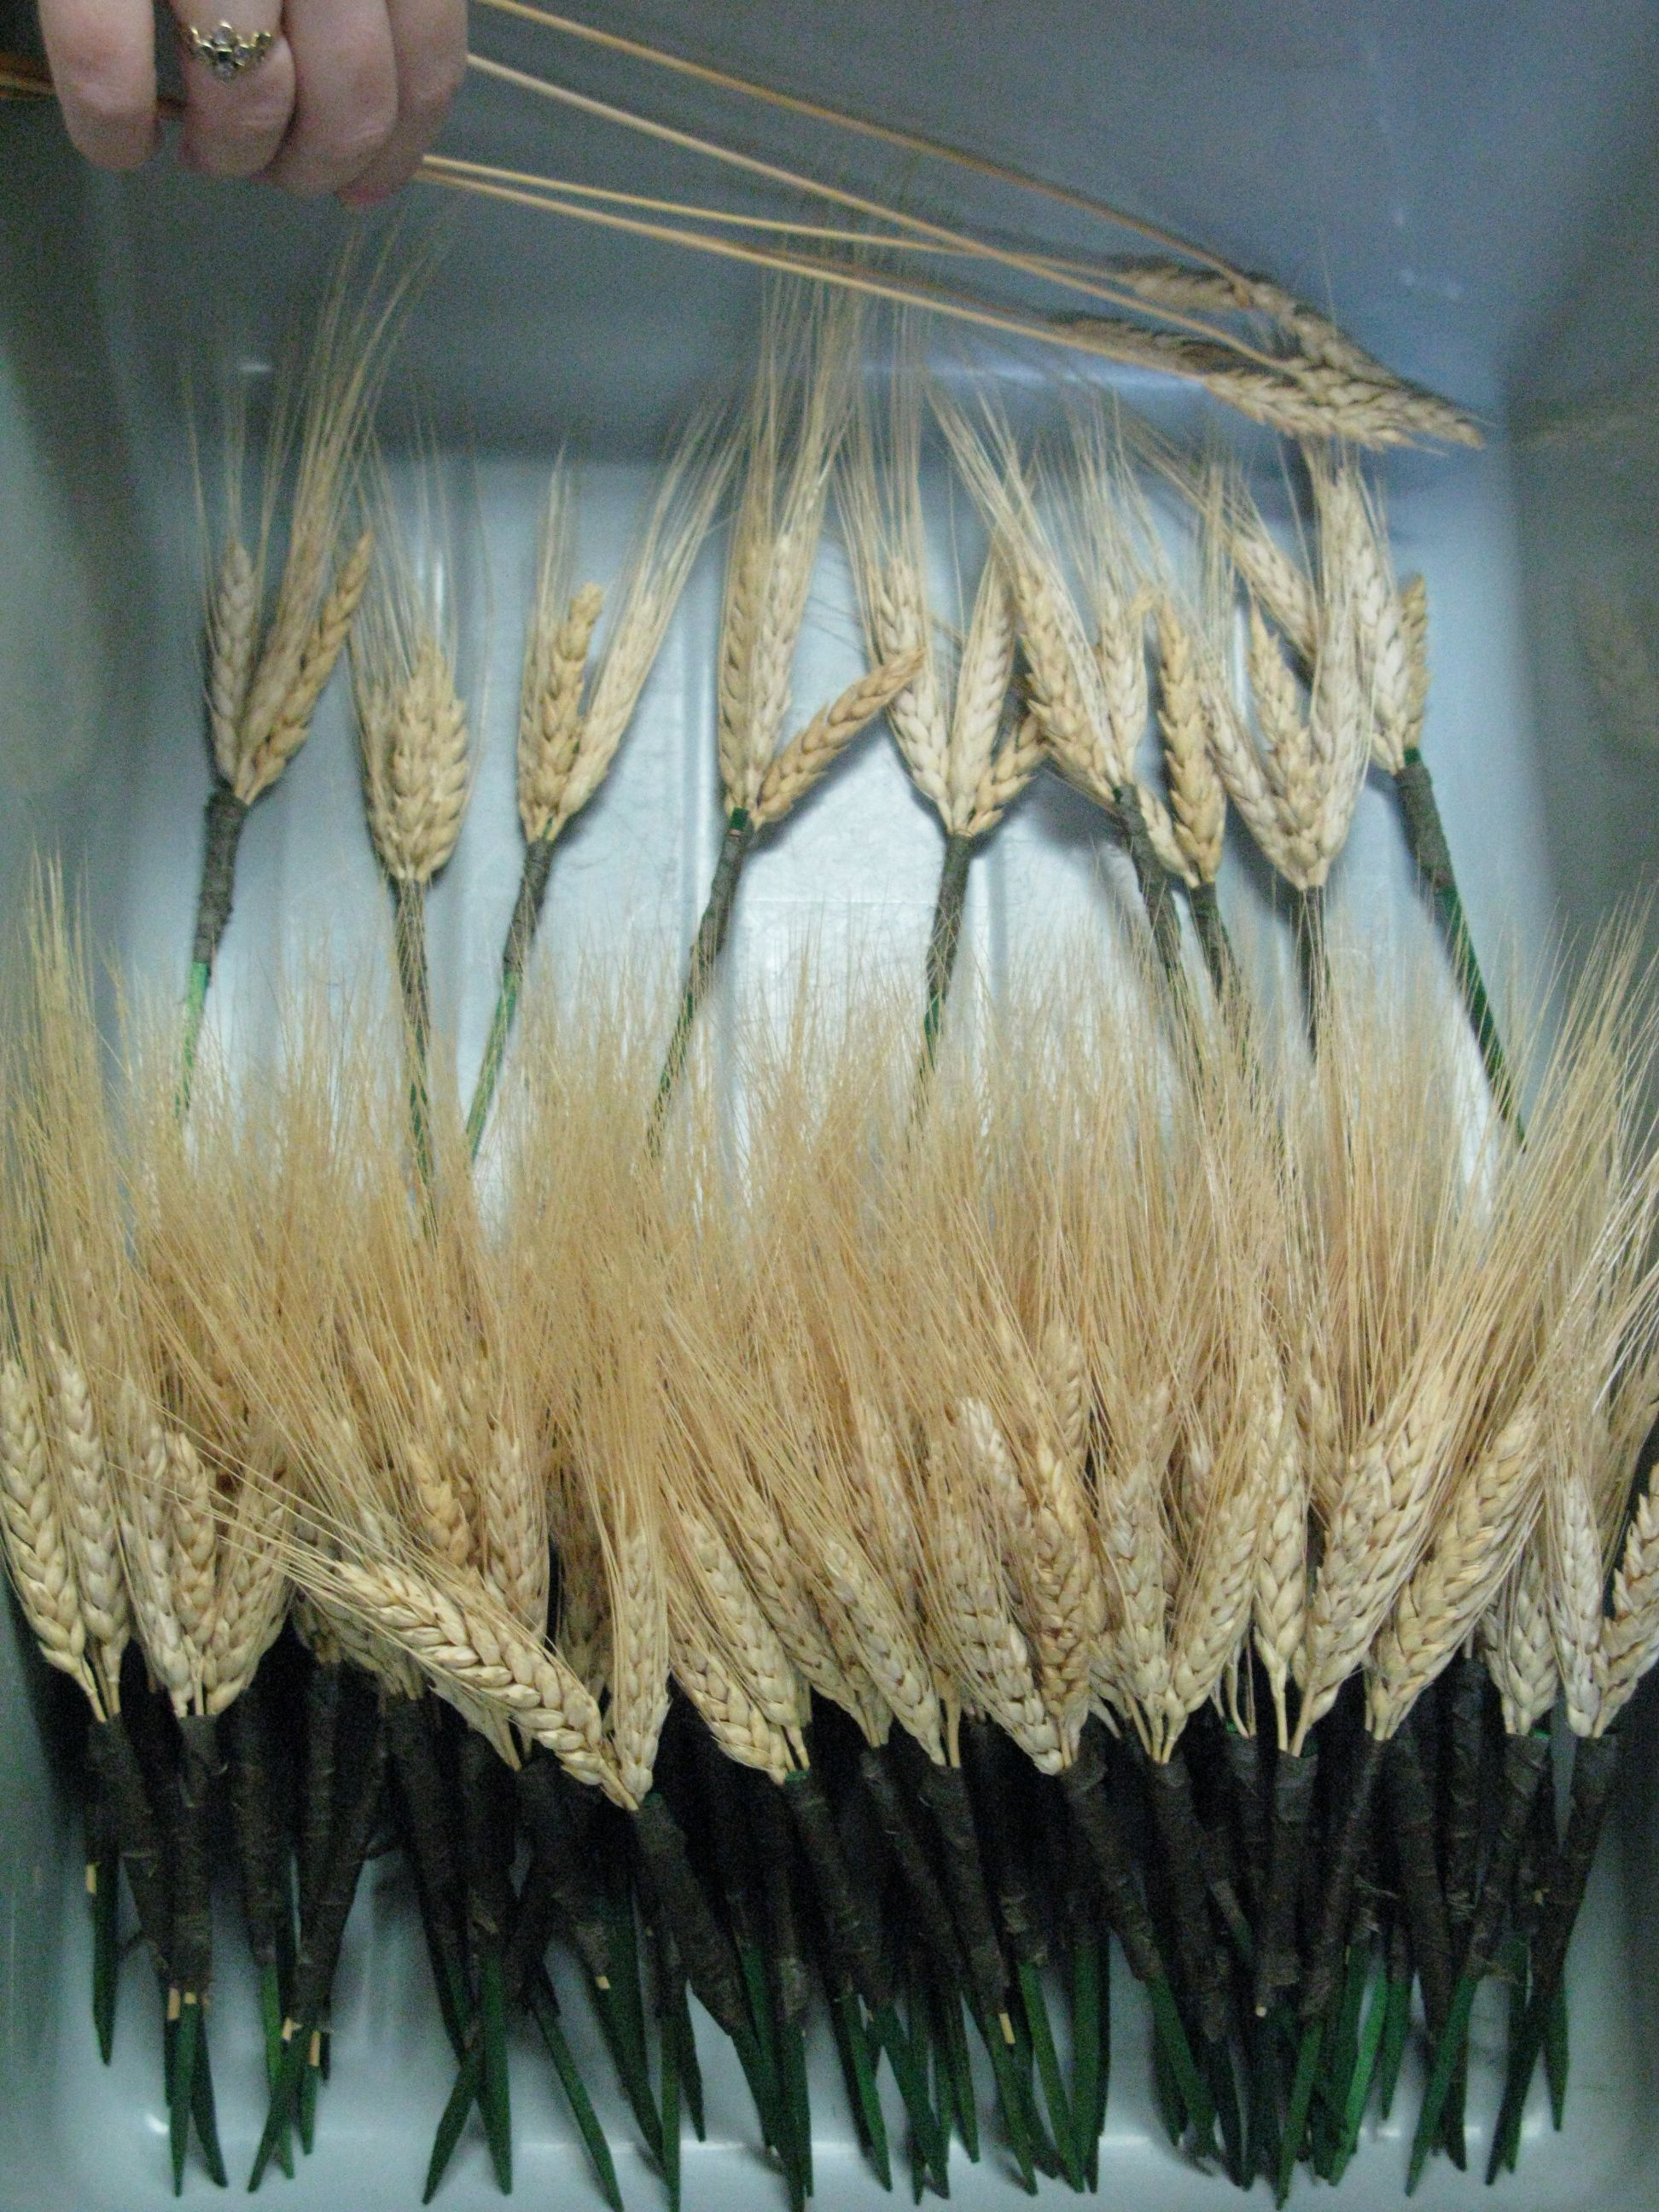 Ears of wheat wired to florist's picks